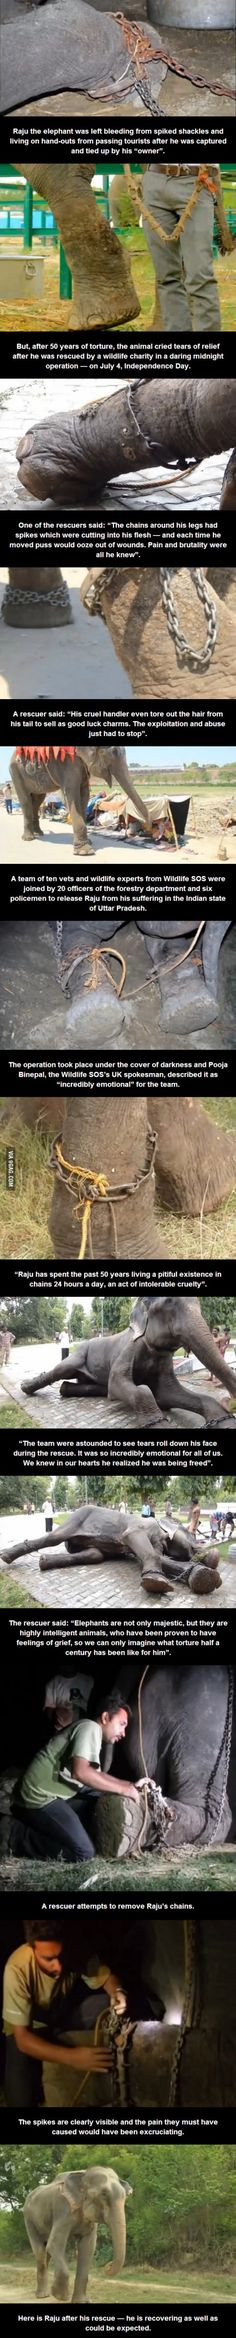 This elephant was freed after he was held in spiked shackles for 50 years. He cried when he was finally liberated…